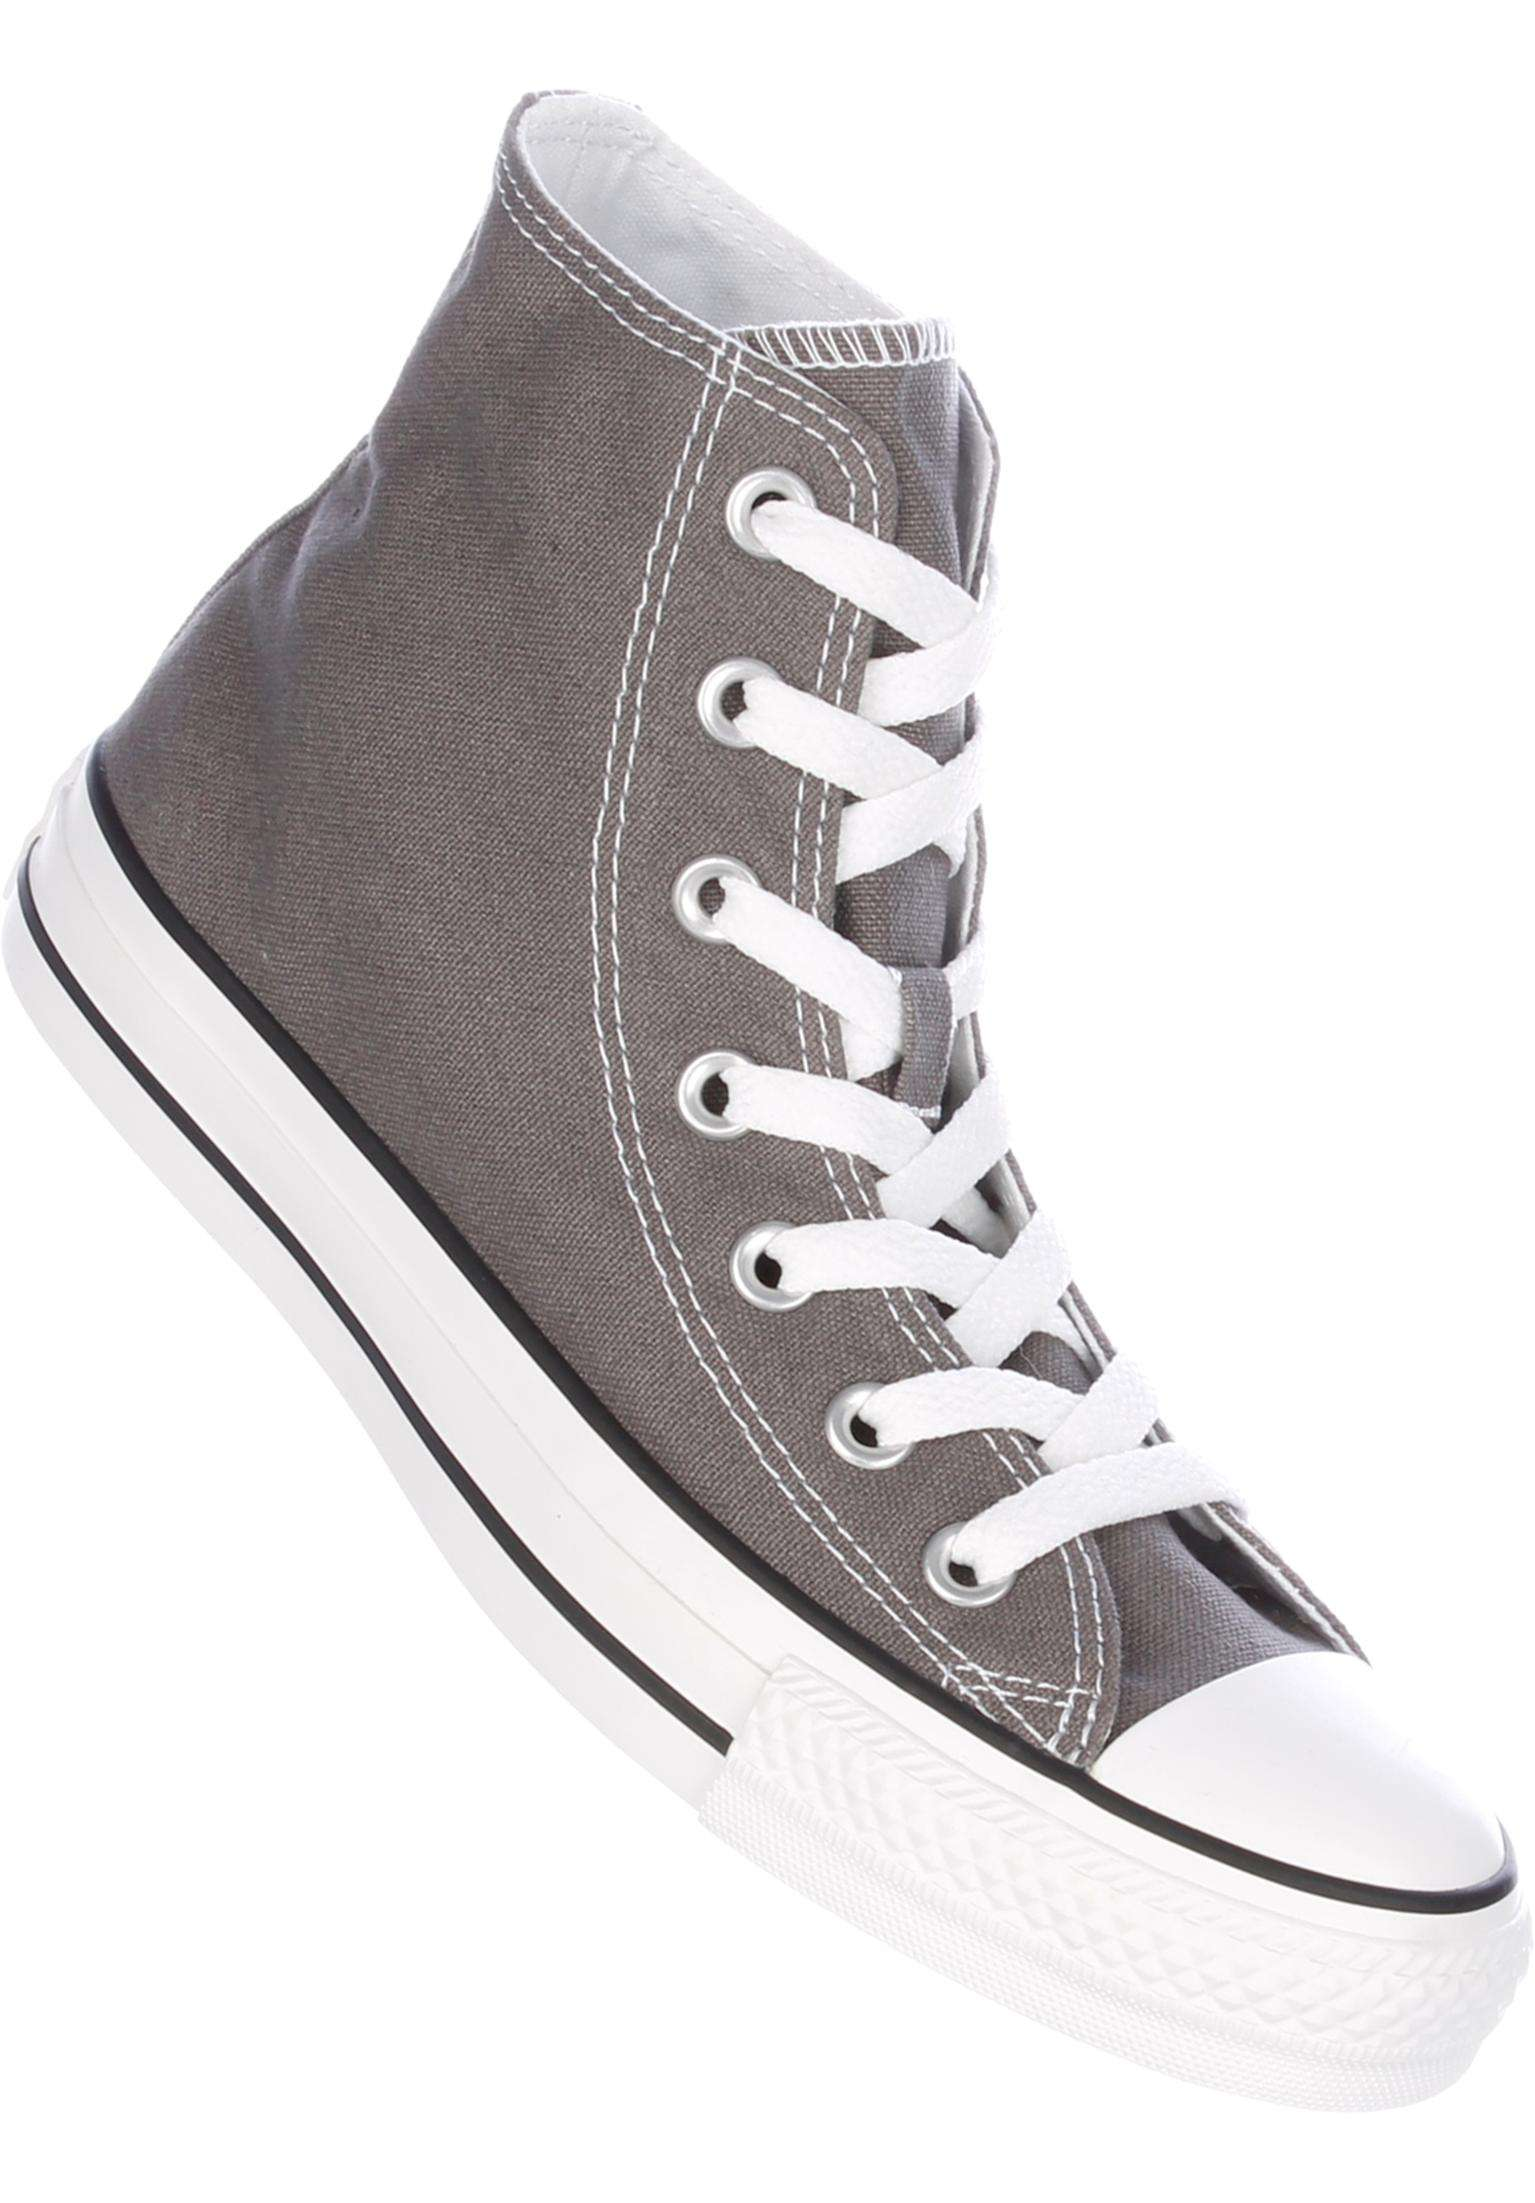 aa2617eb6359 Chuck Taylor Allstar Hi Converse All Shoes in charcoal for Men